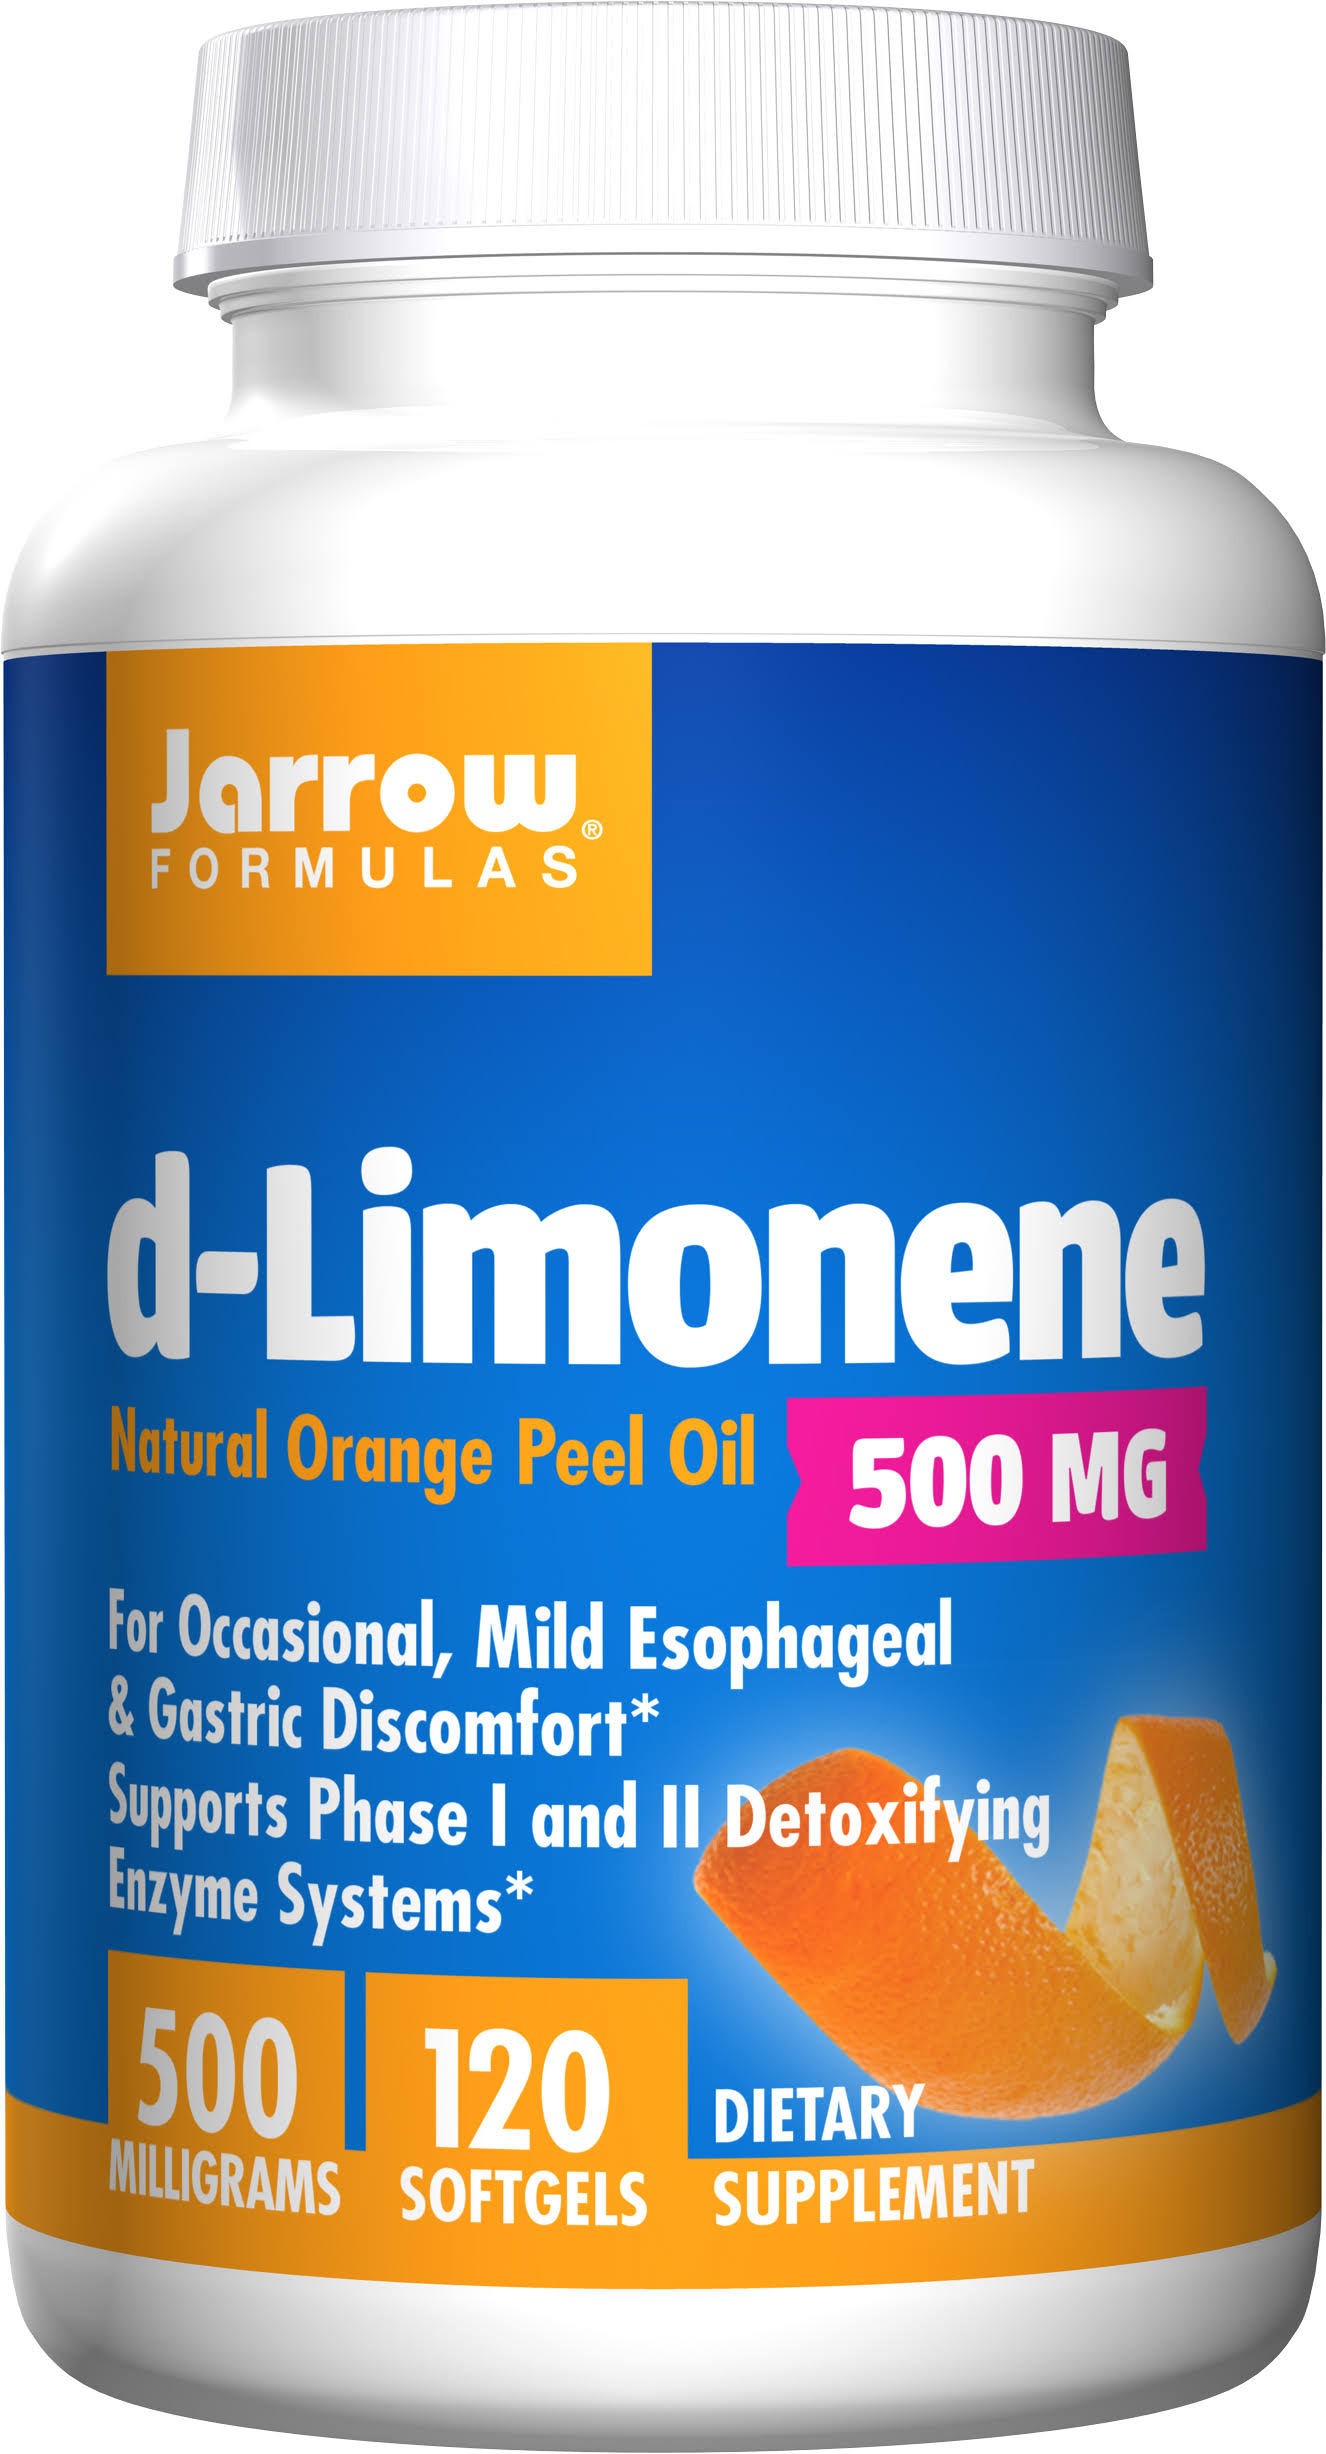 Jarrow Formulas D-limonene Dietary Supplement - 60 Softgels